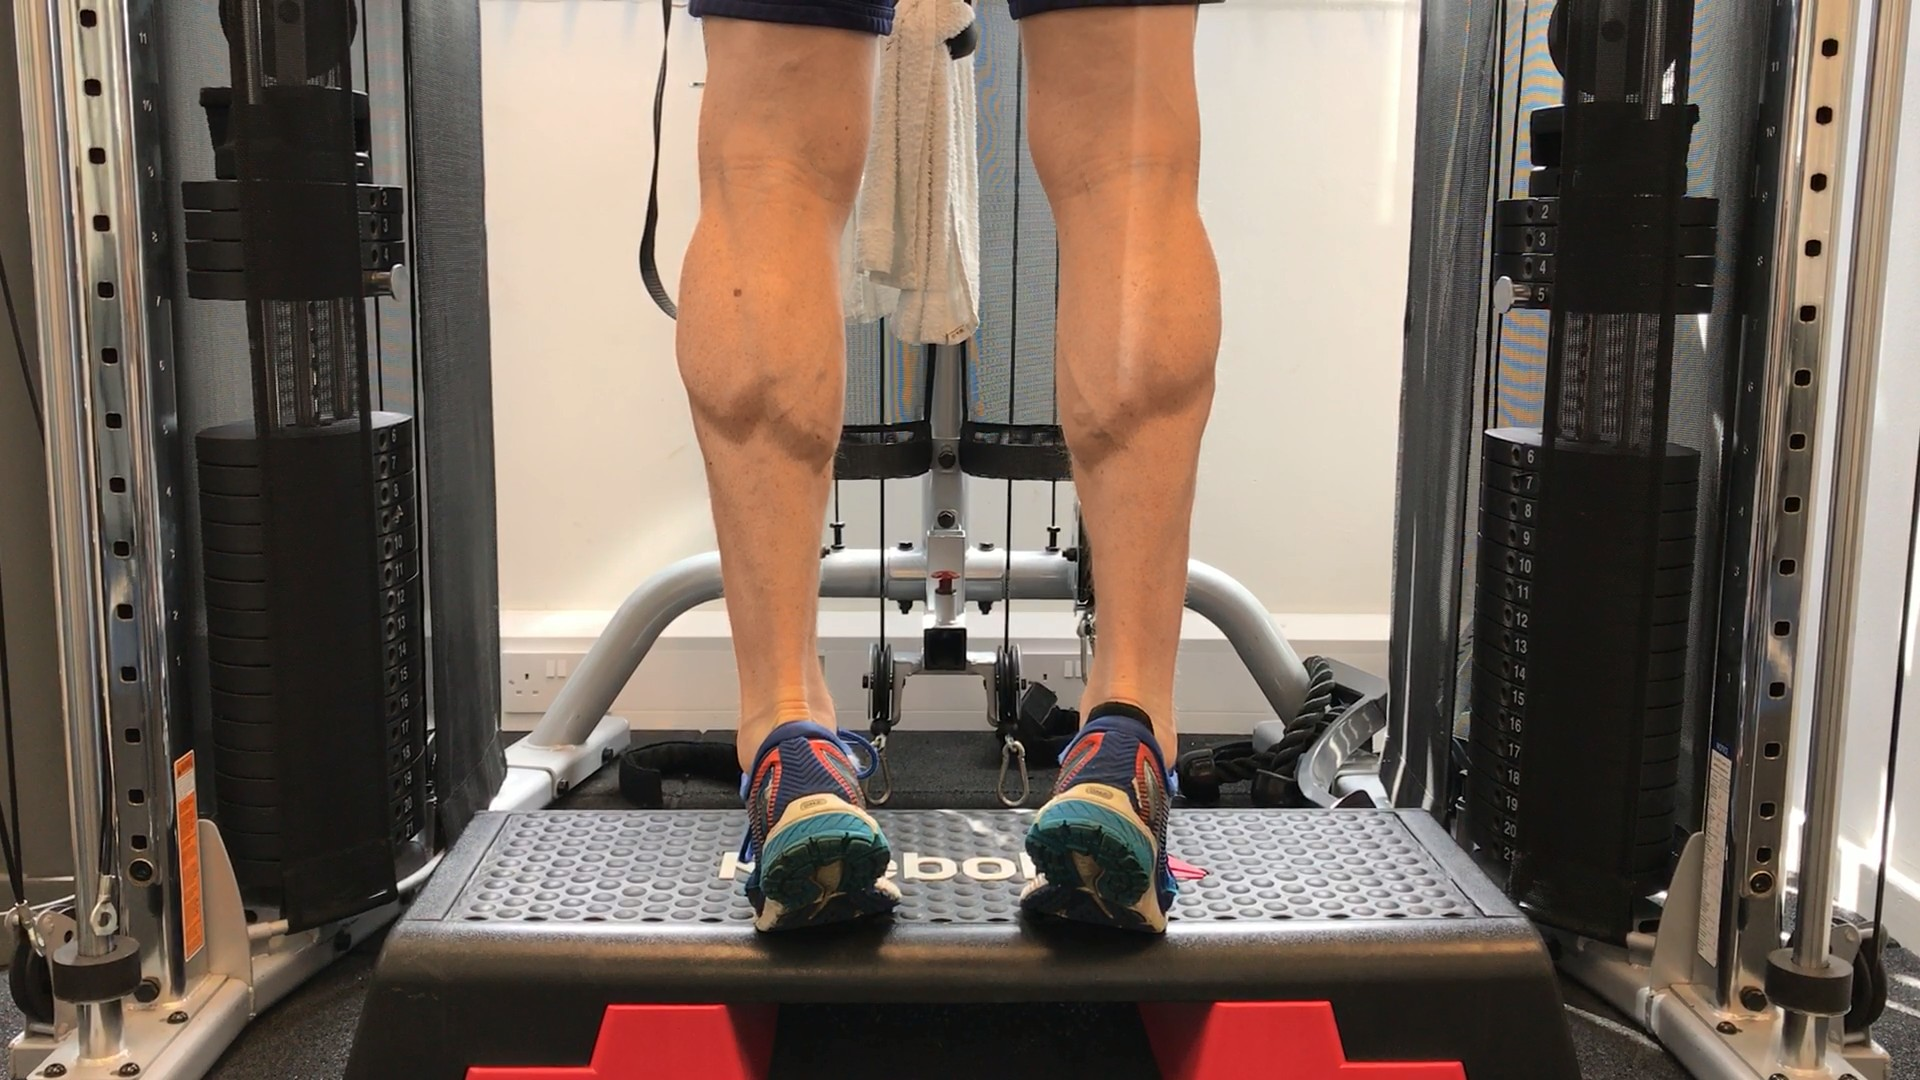 Top 5 best calf exercises- standing heel raises